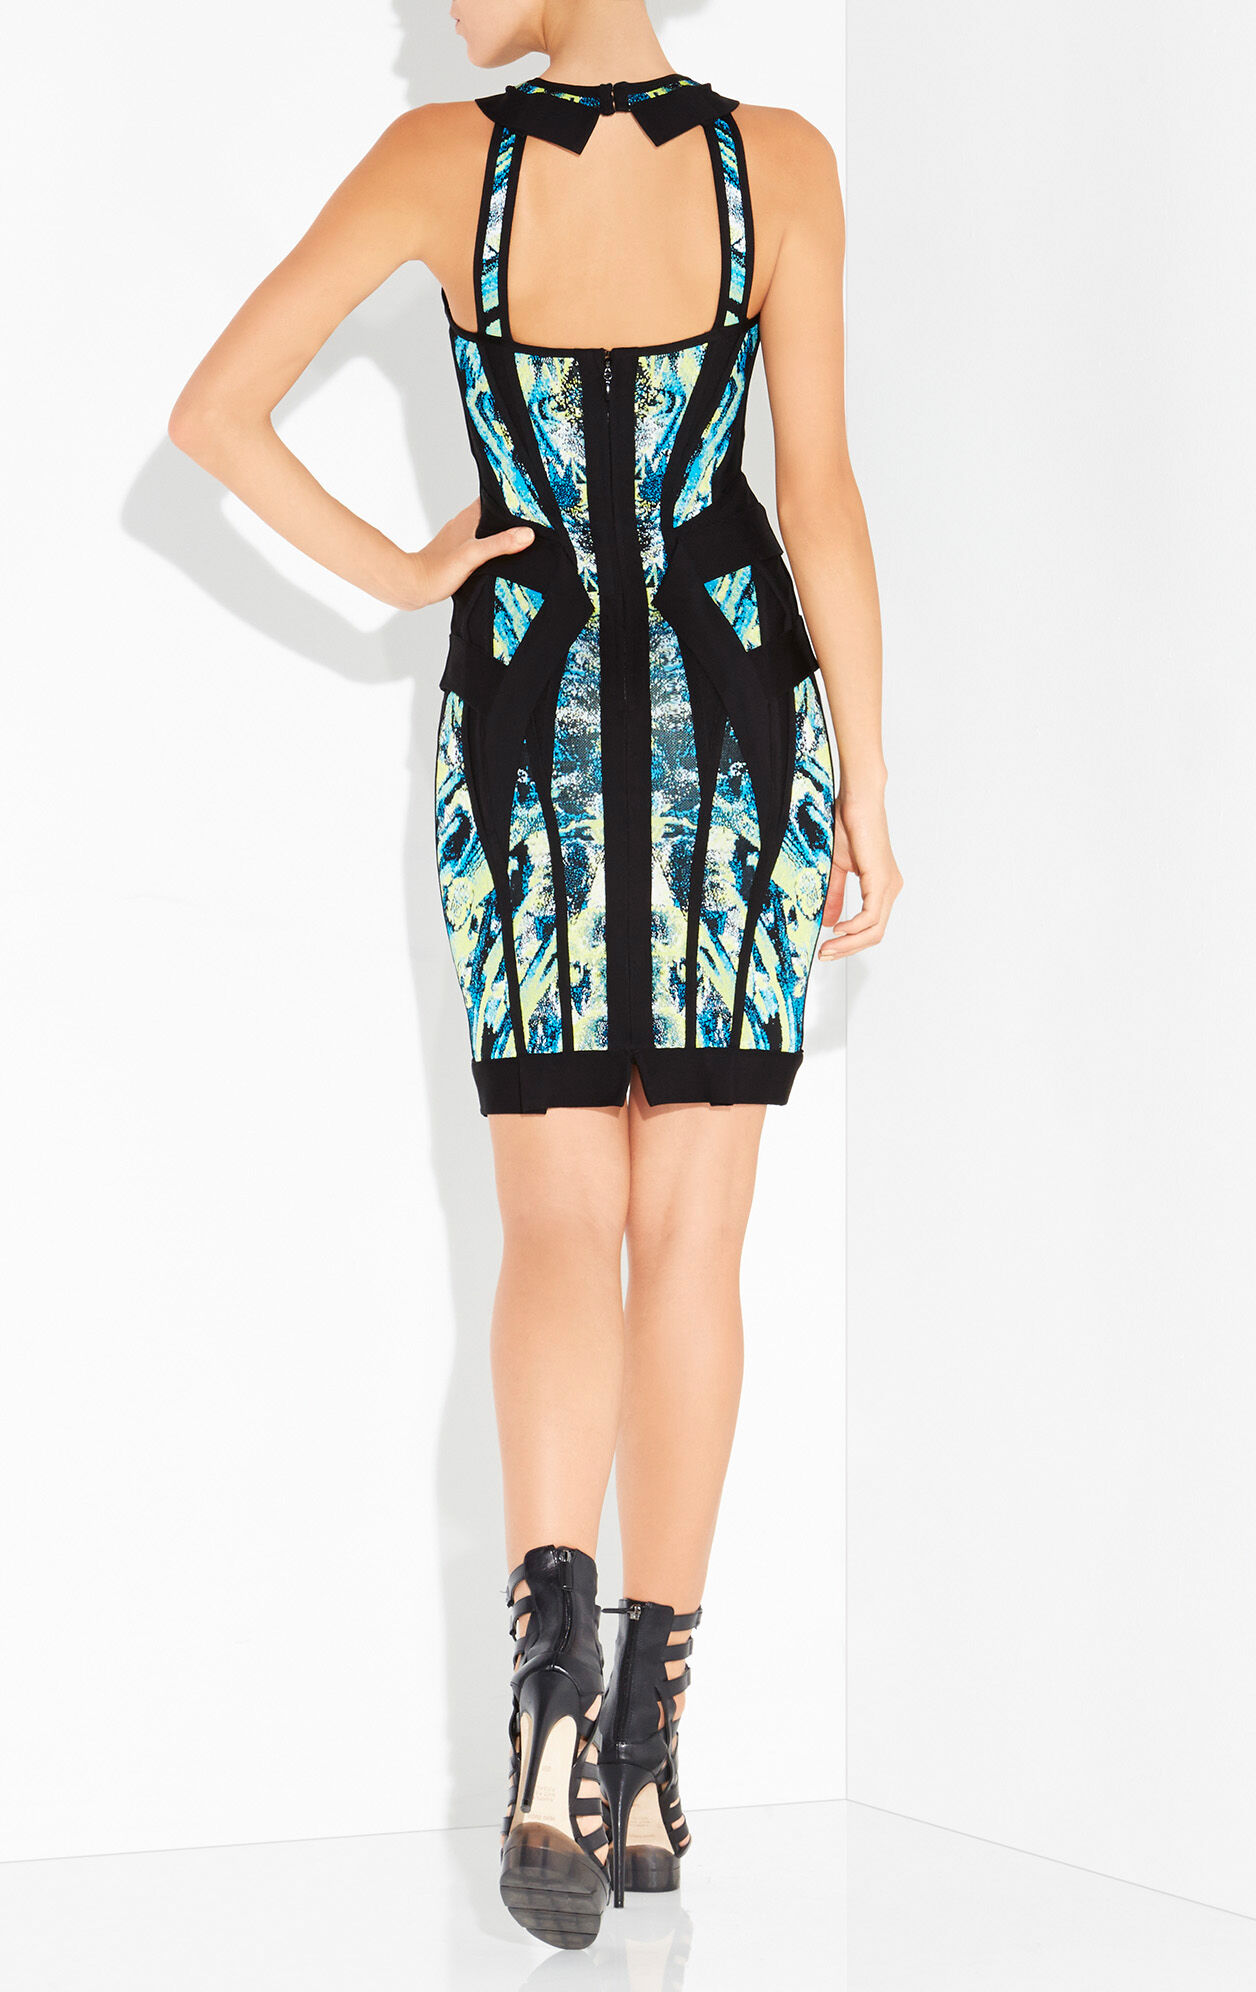 Damiana Ceiling Textured Jacquard Dress